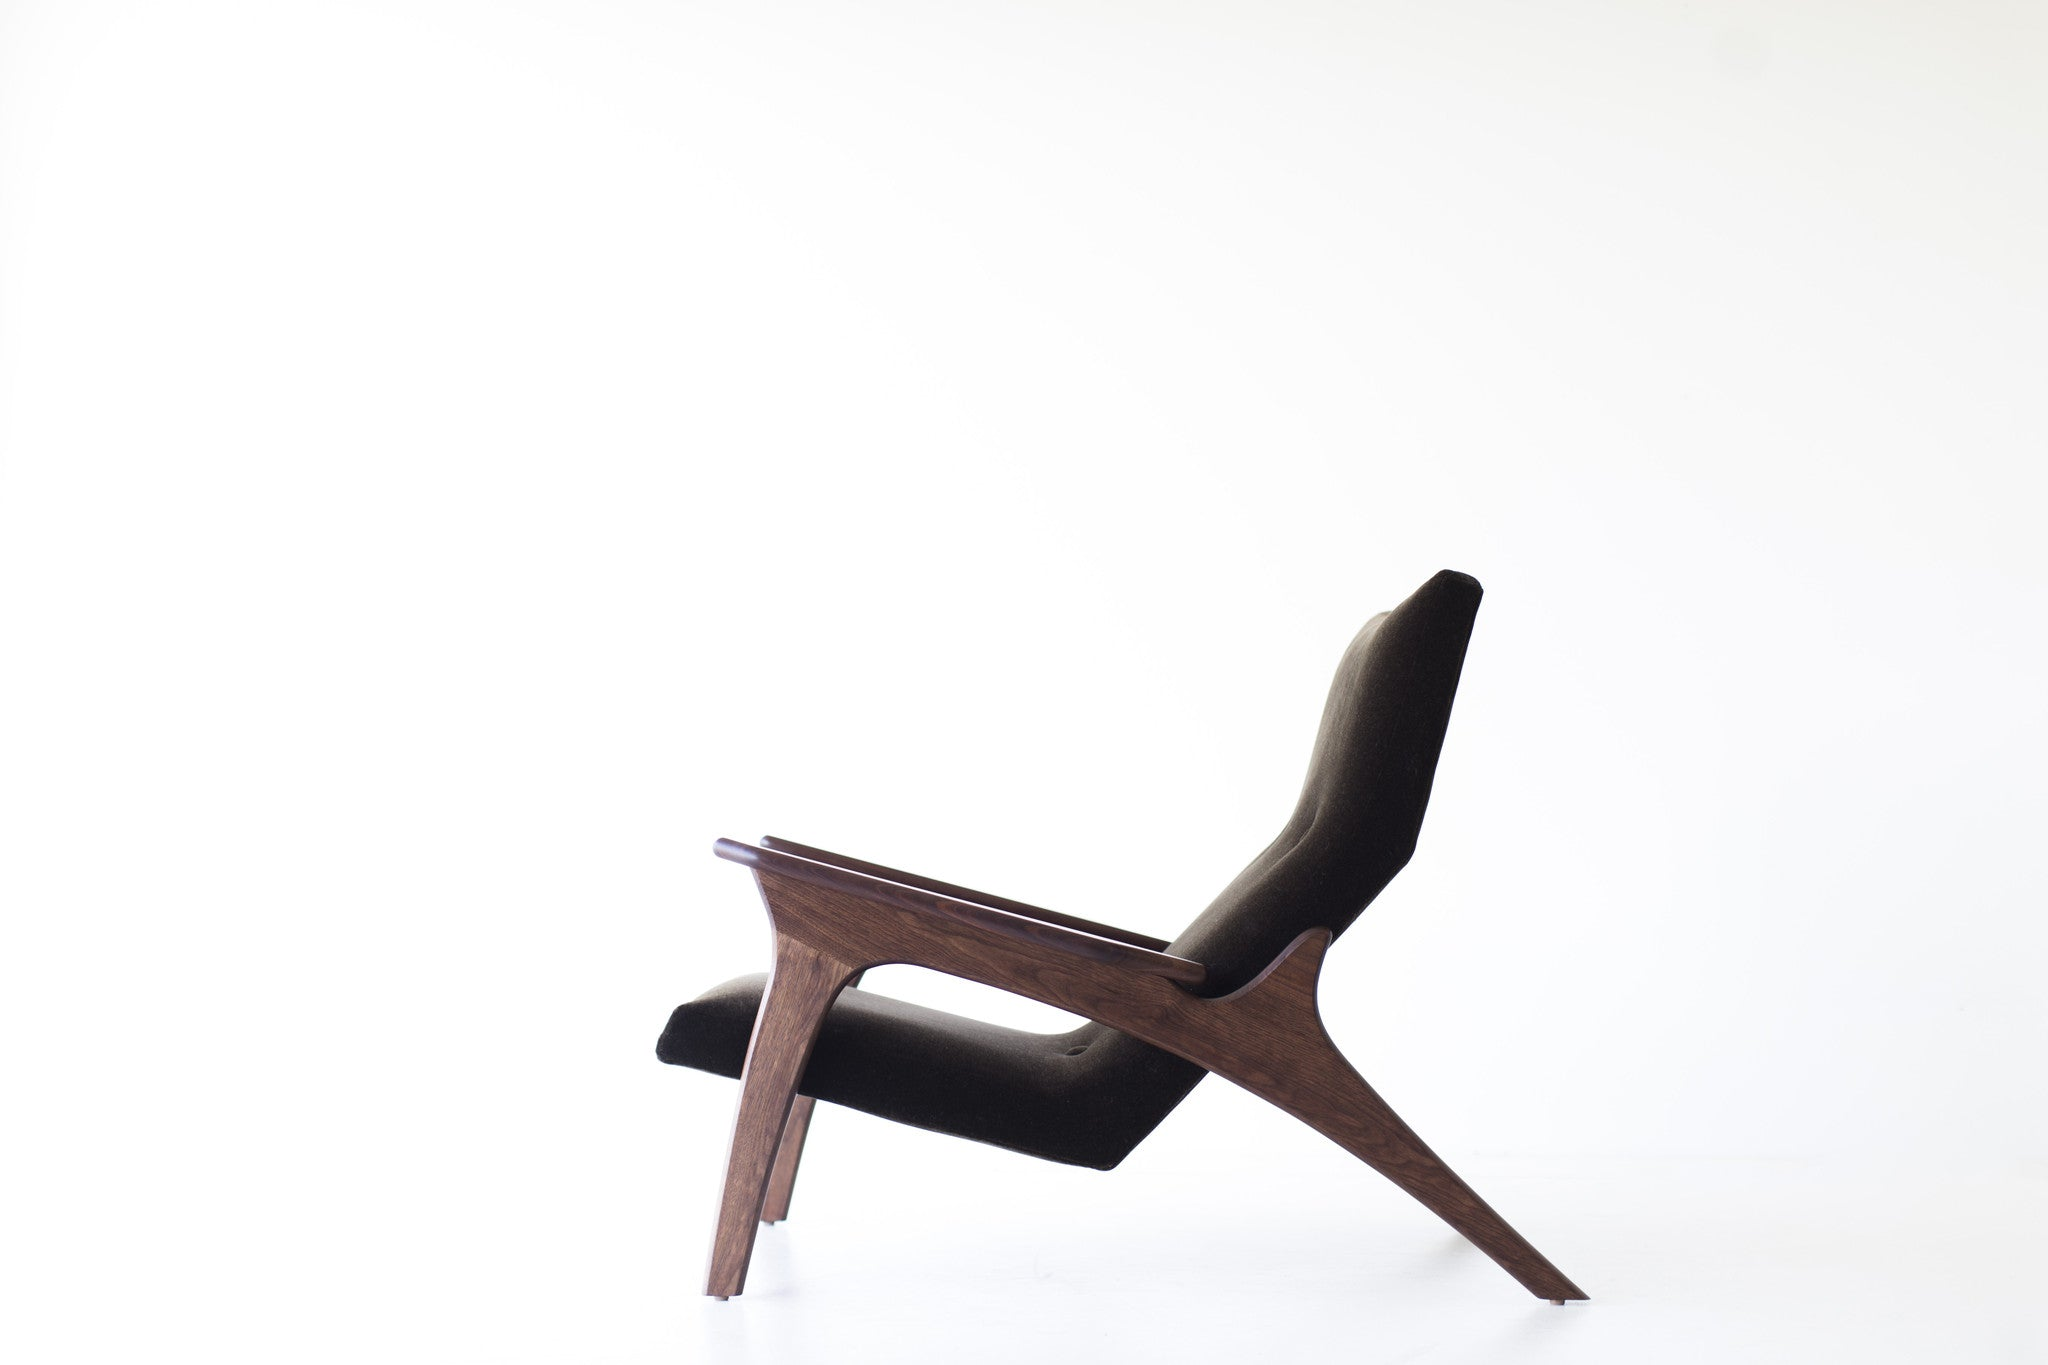 modern-wooden-arm-wing-chair-1521-craft-associates-furniture-08